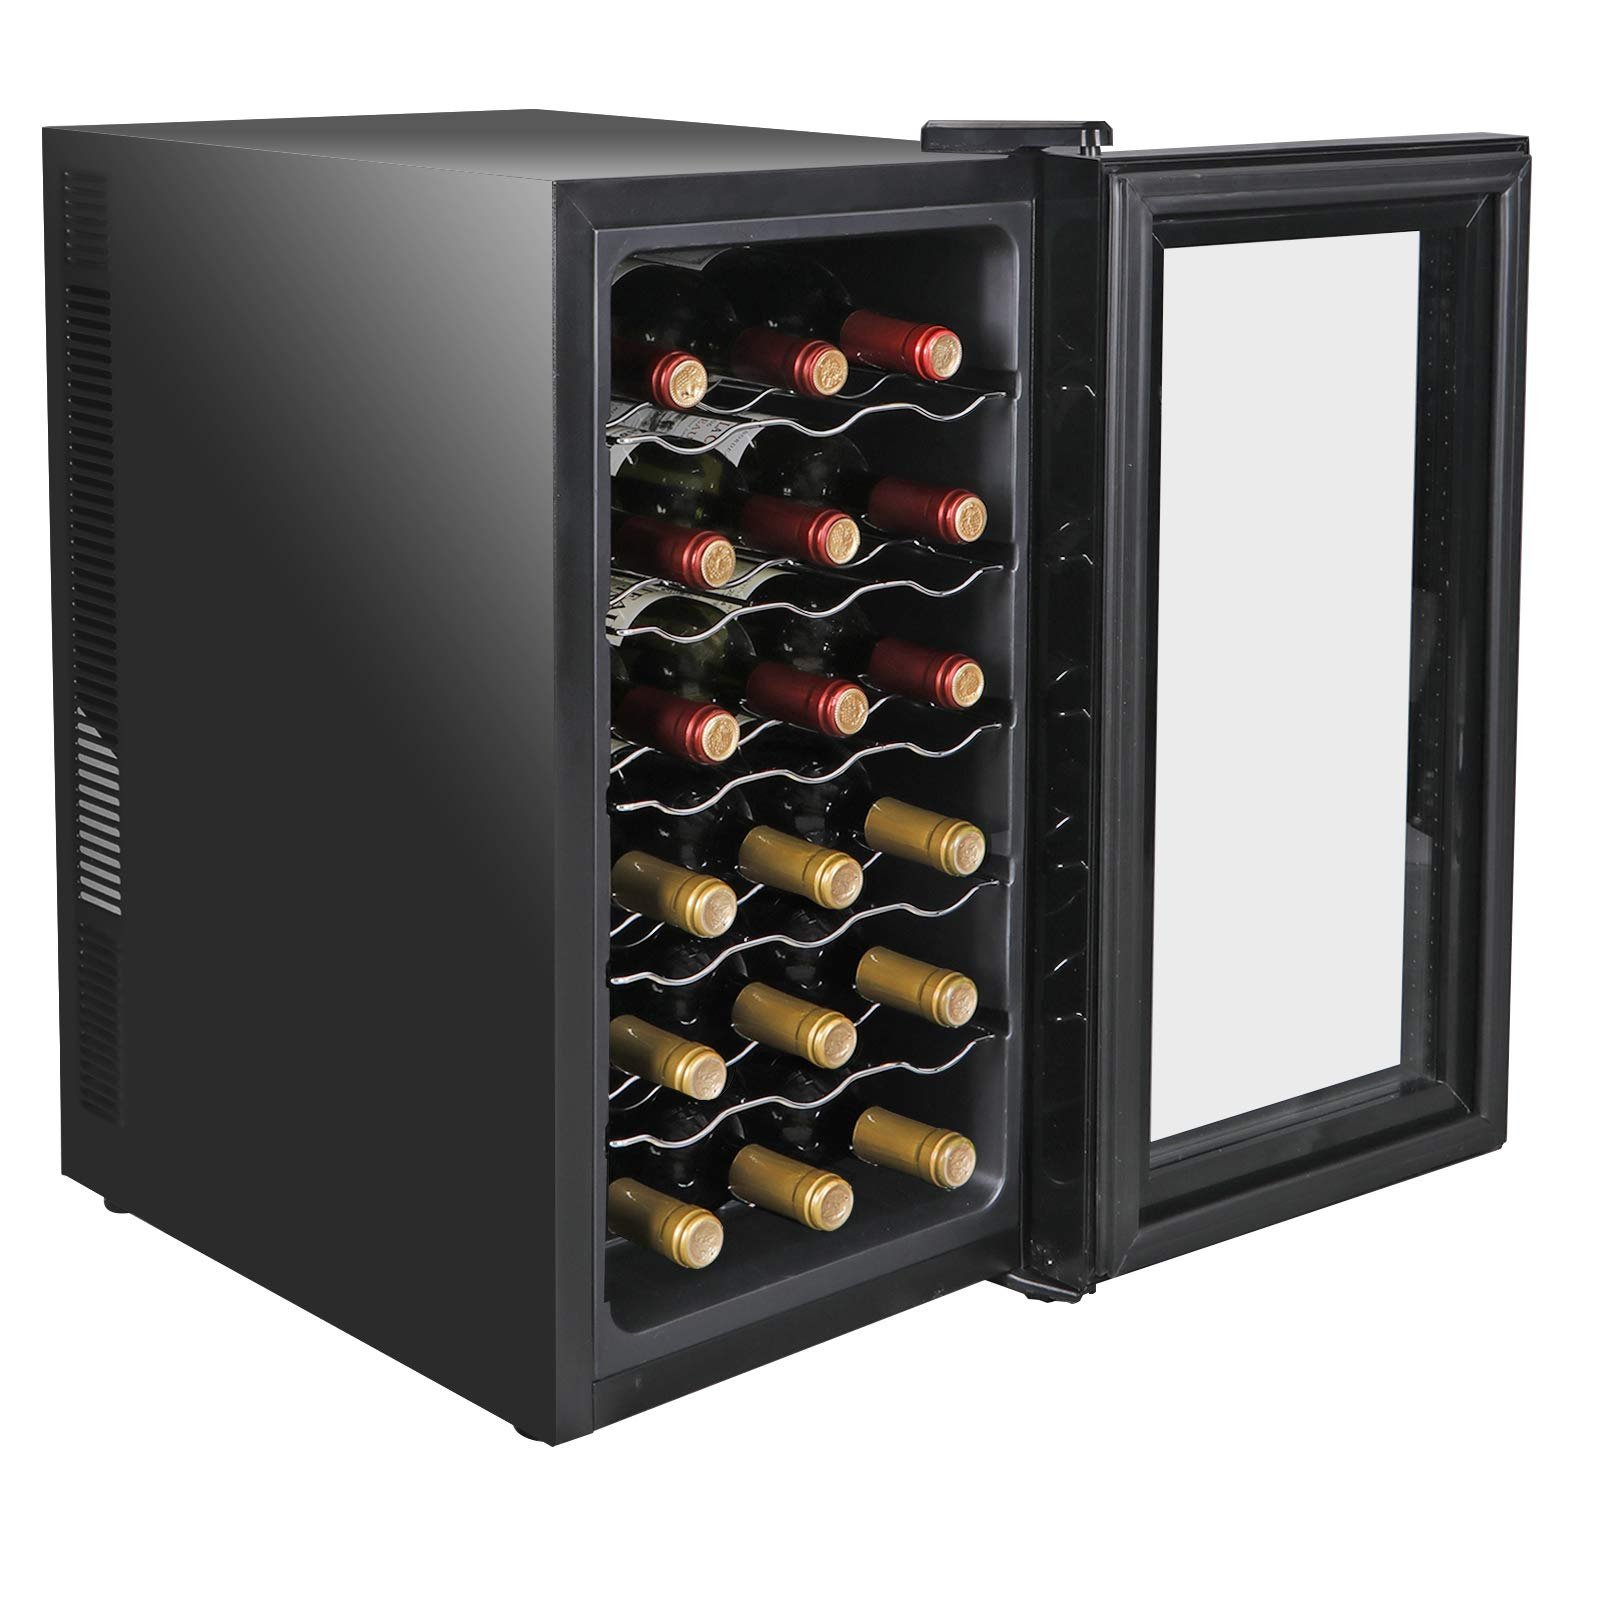 SUPER DEAL Pro 18-Bottle Thermoelectric Wine Cooler Red White Wine Champagne Chiller Counter Top Wine Cellar - Digital Temperature Control - LED Interior Lighting - Quiet and Vibration Free (PRO)